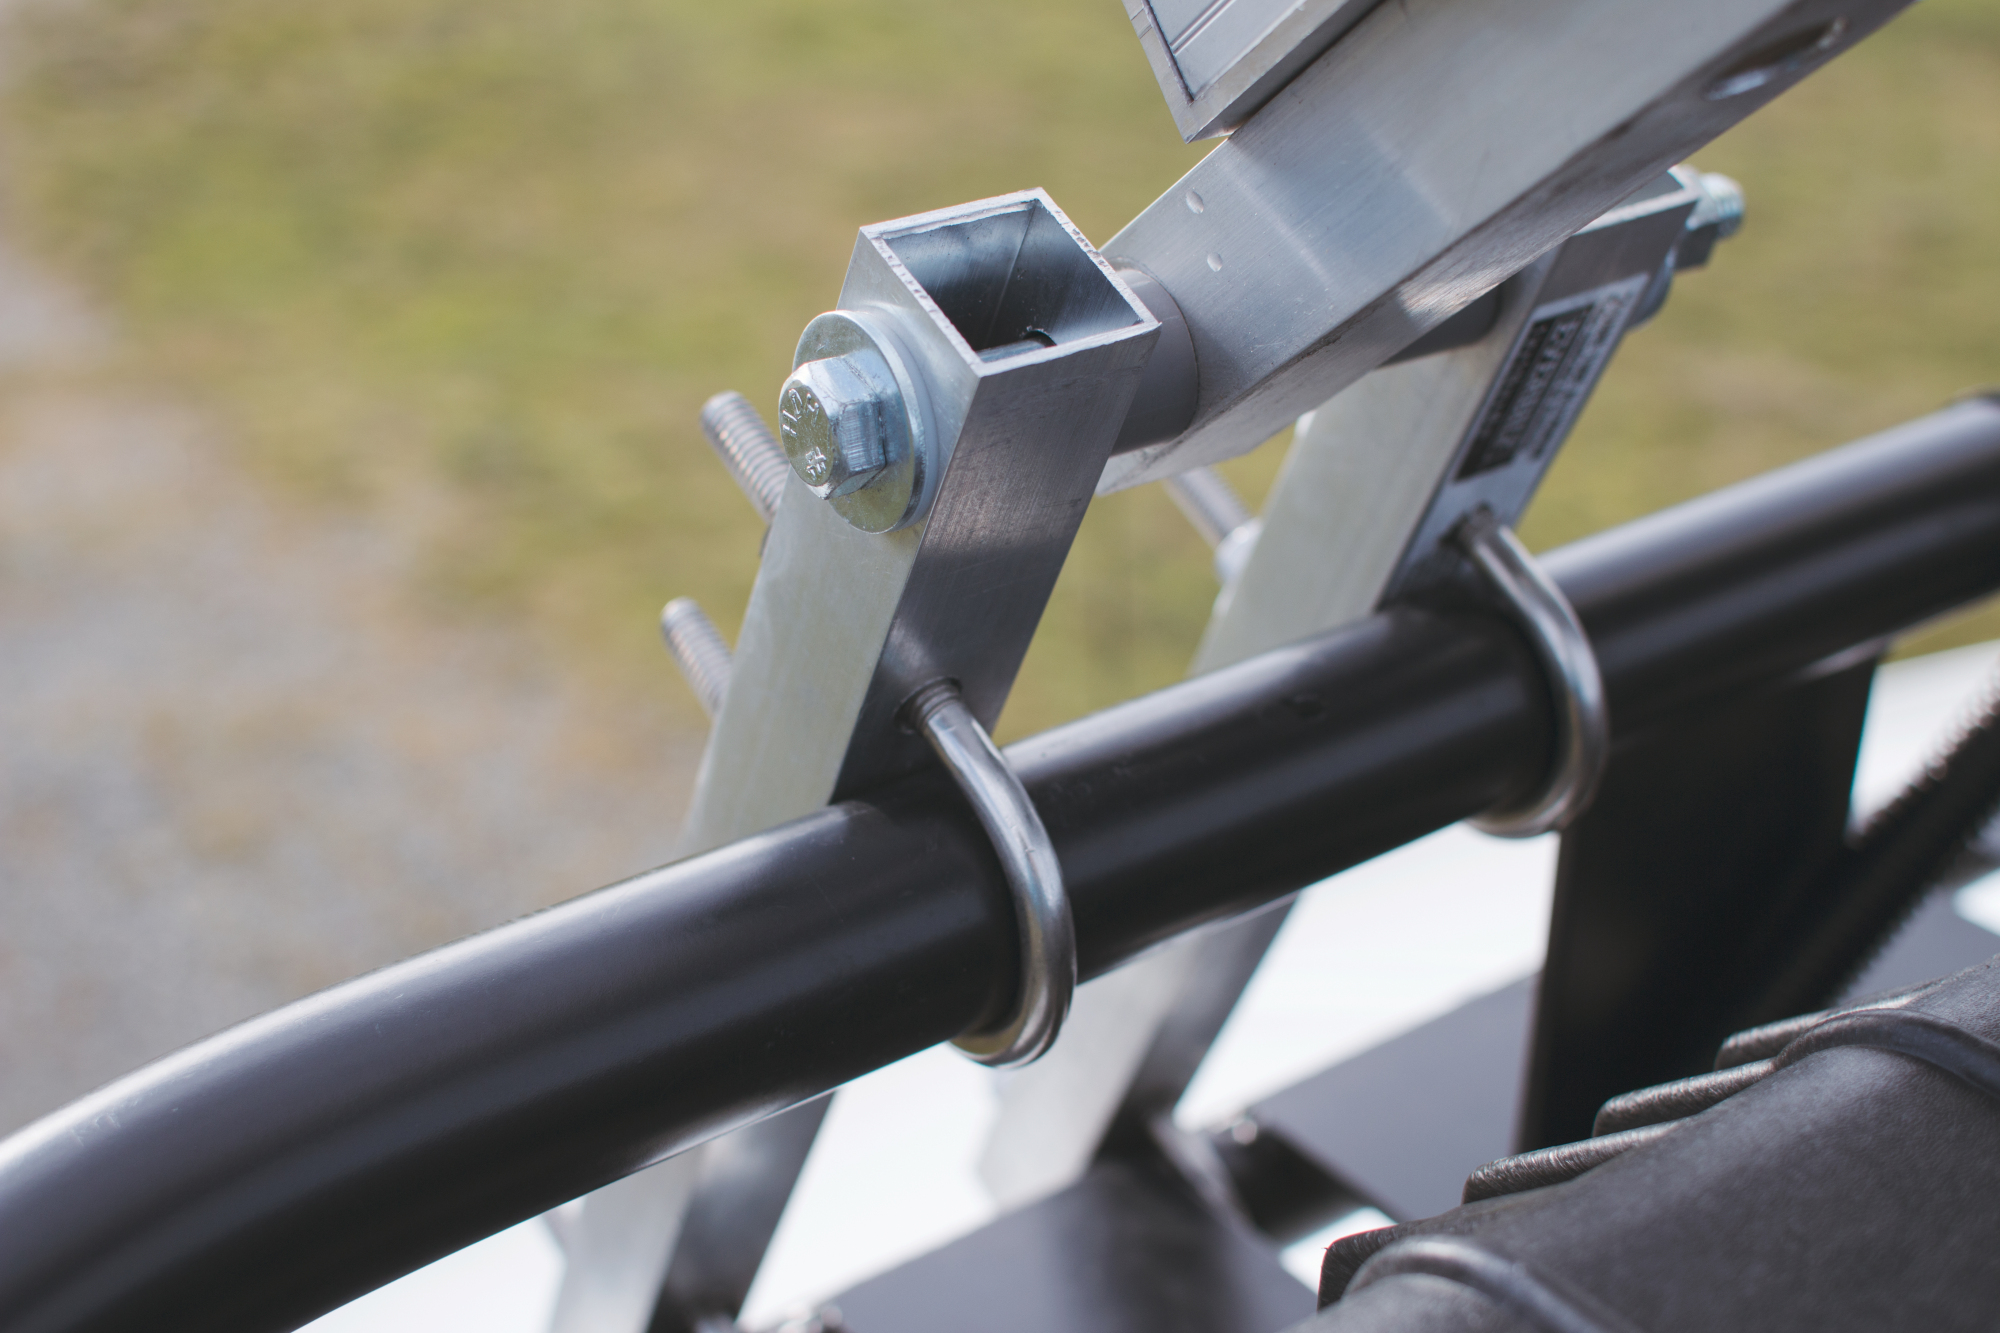 This is the large, custom hinge that Shane created with U-bolts and some steel tubing. The frame for the solar panels came in handy for this part as well.